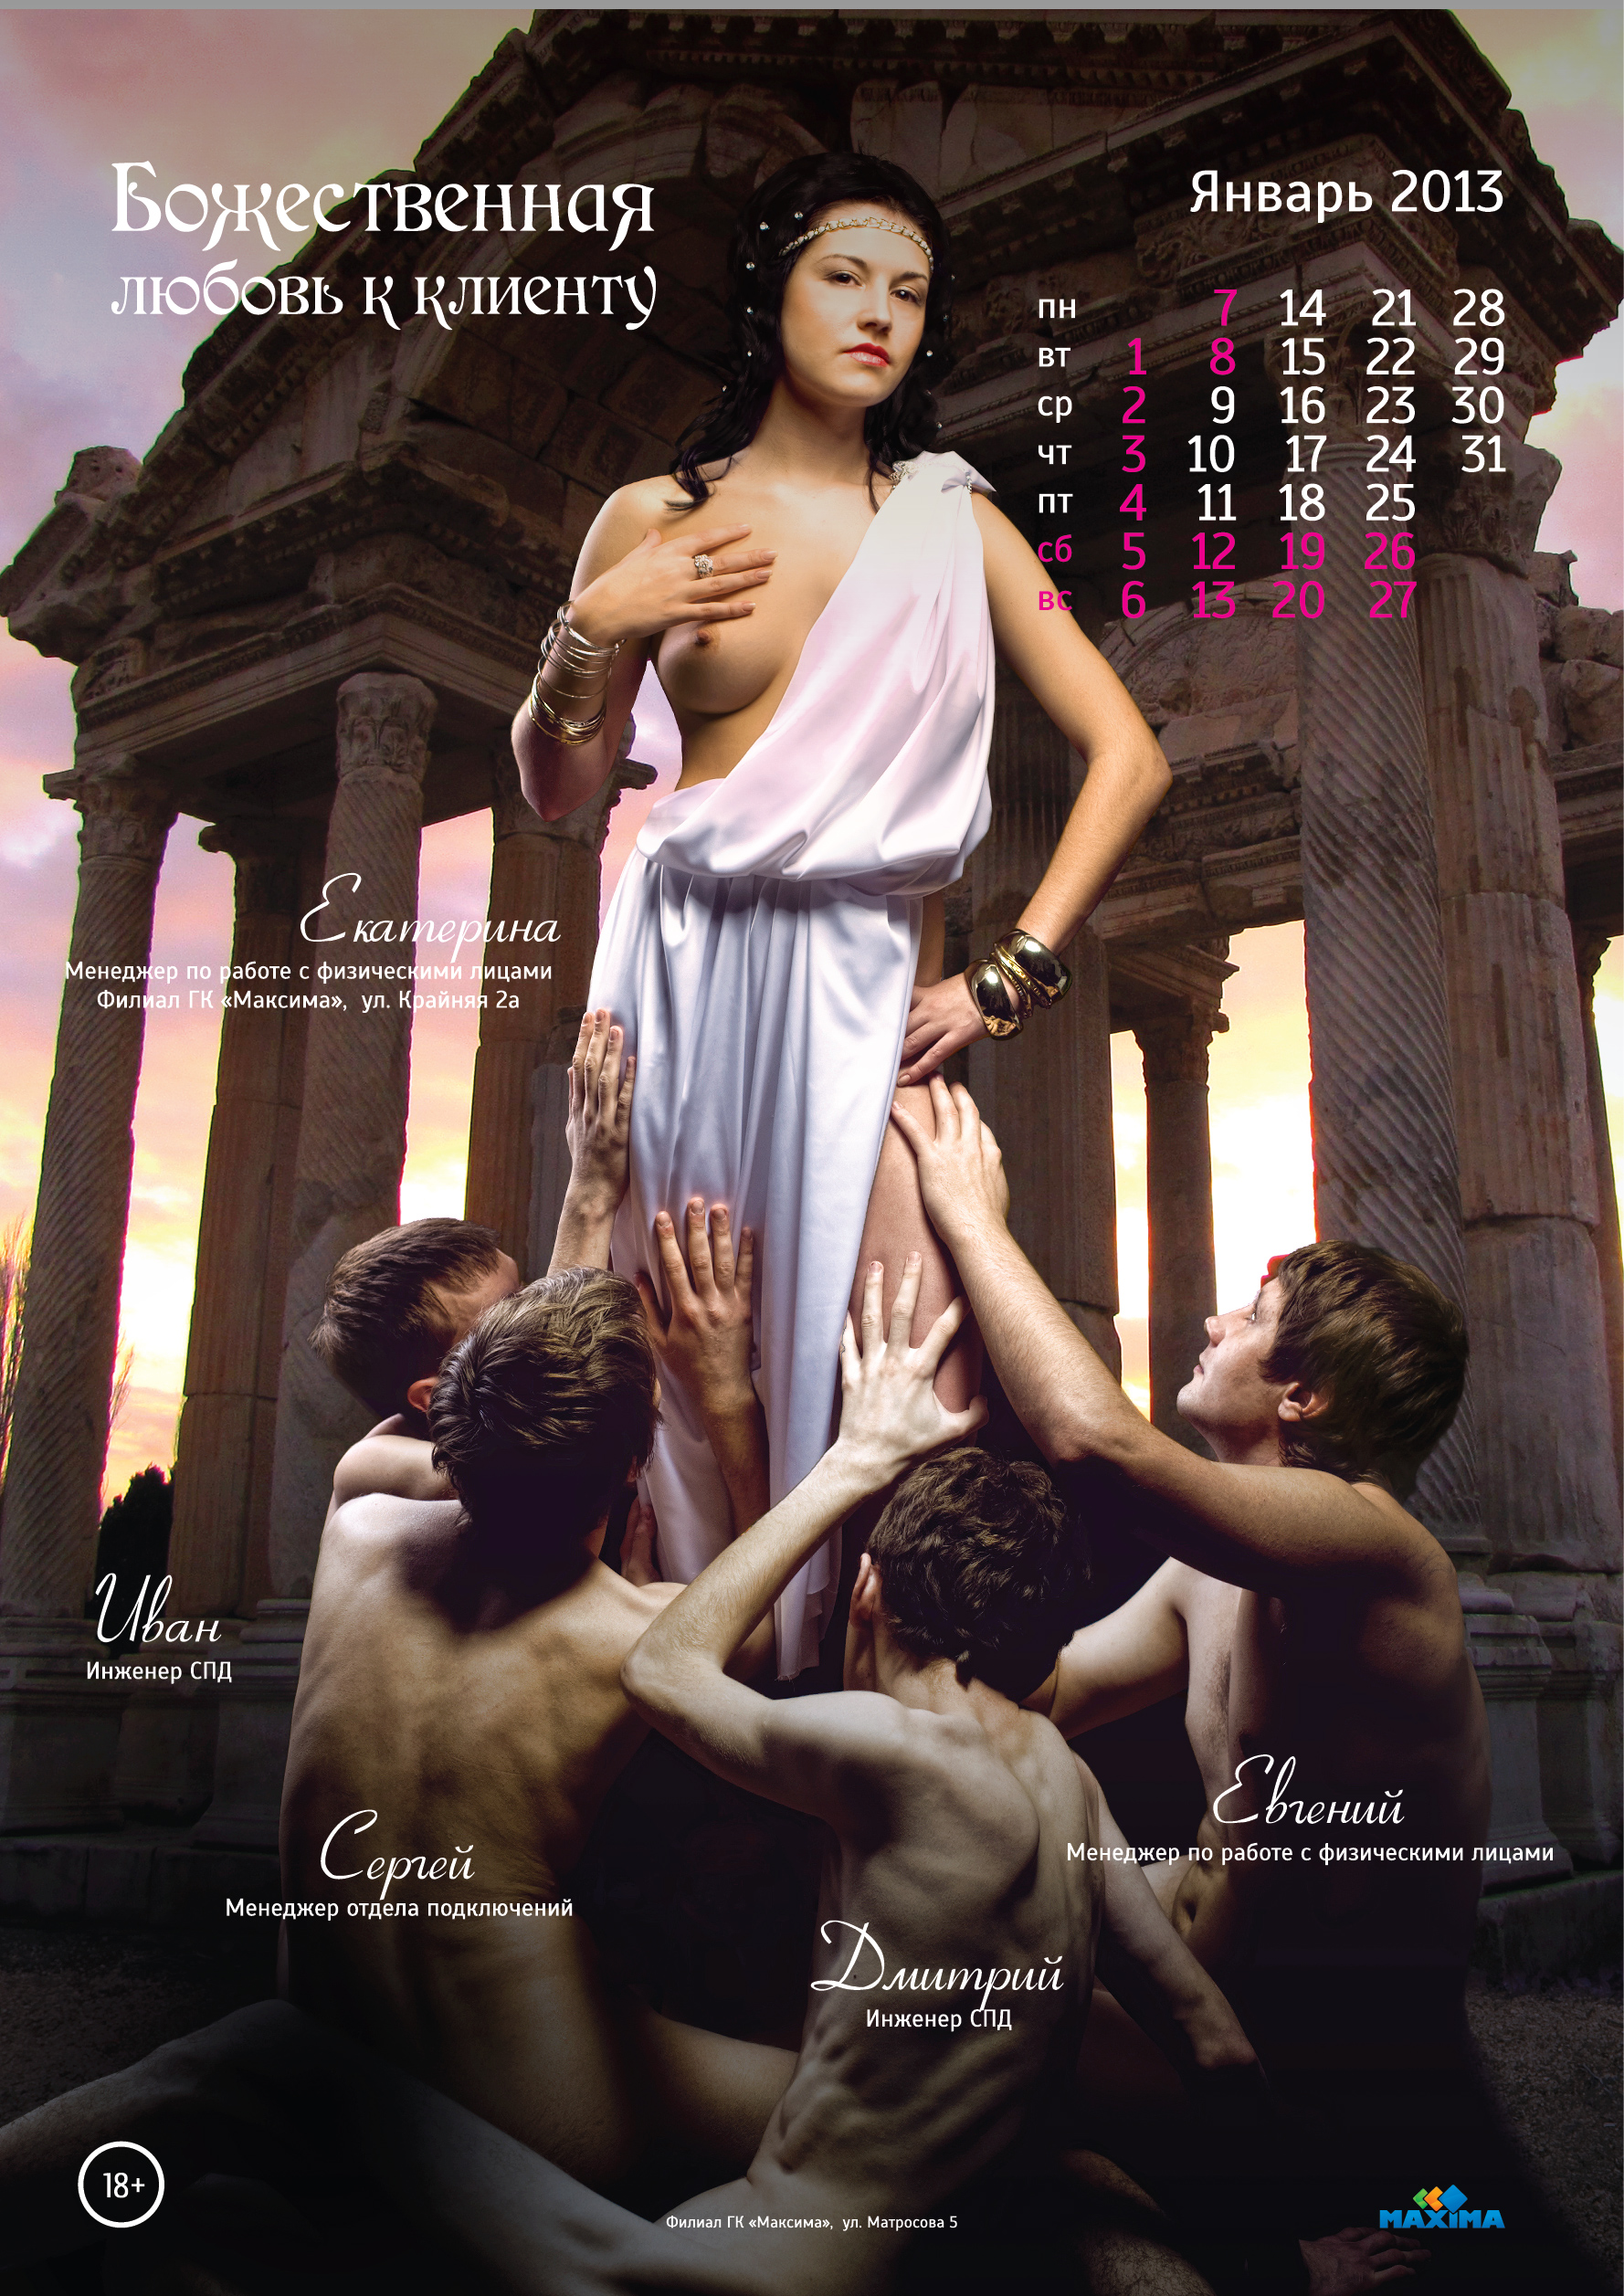 Calendar_1__jpeg__outlines-02